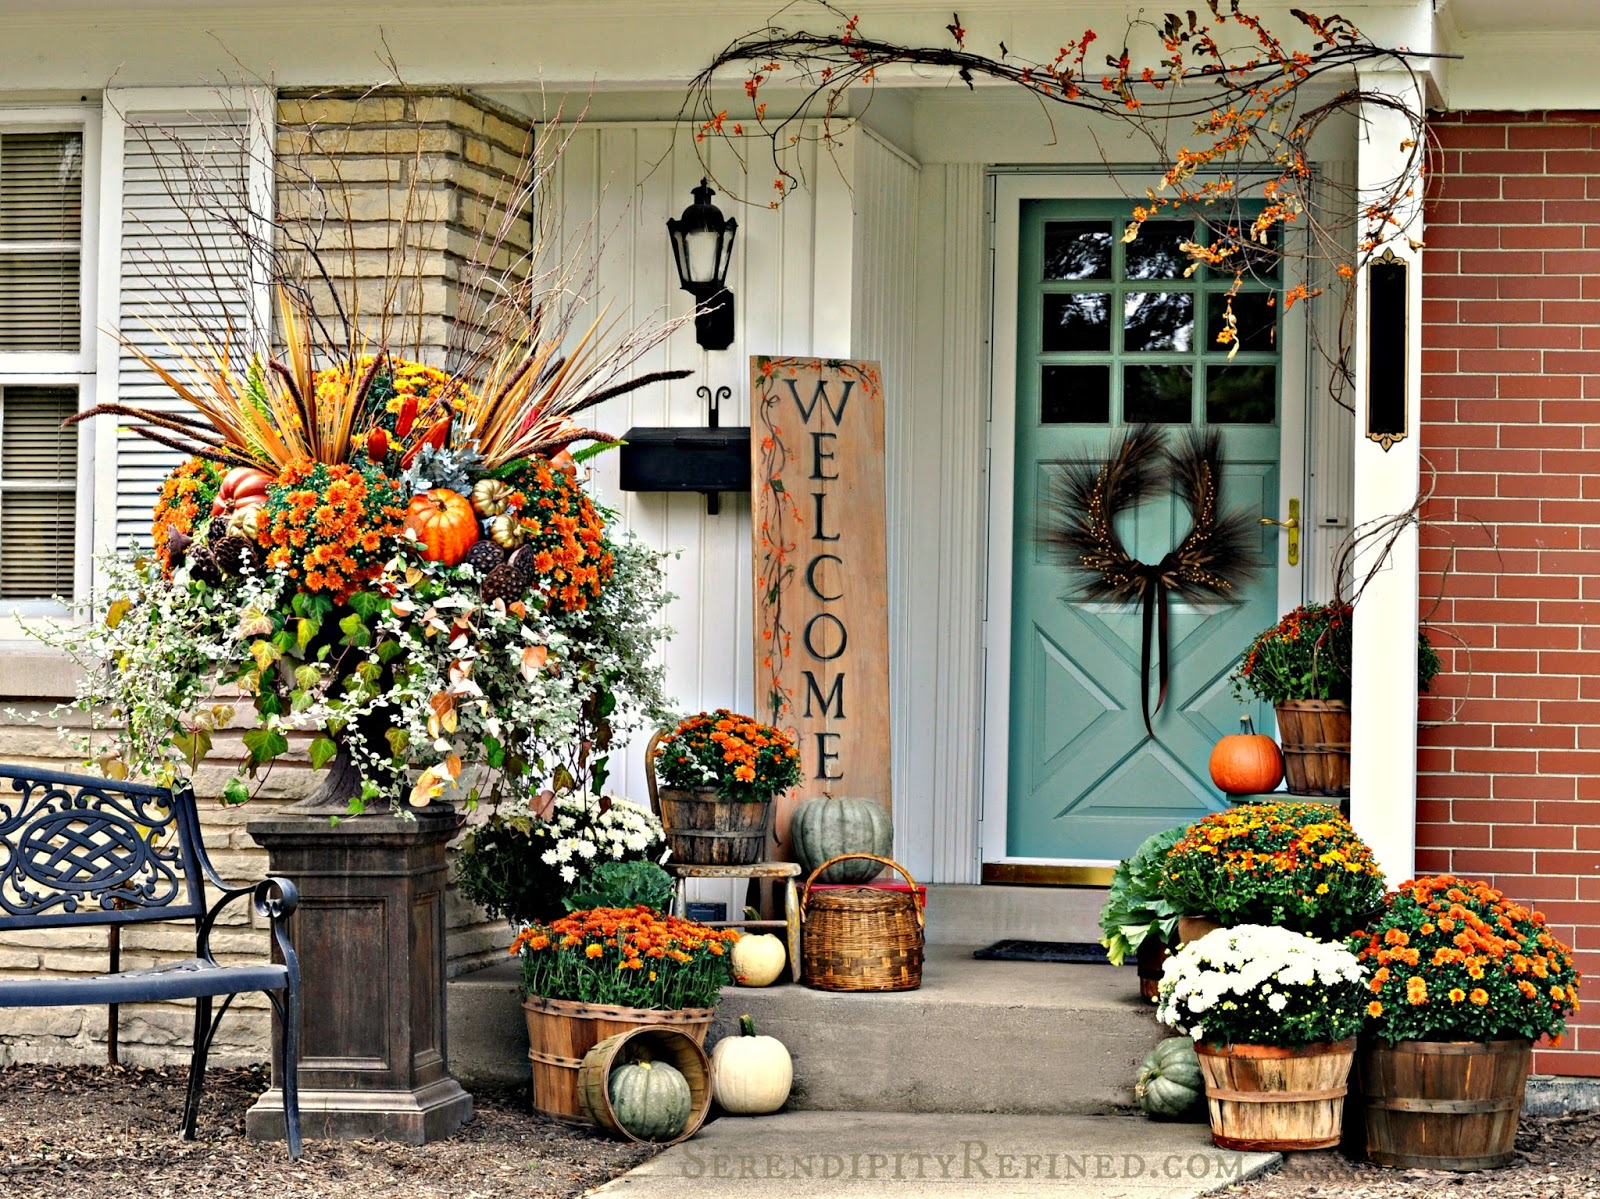 Outdoor Dekoration Fabulous Outdoor Decorating Tips And Ideas For Fall Zing